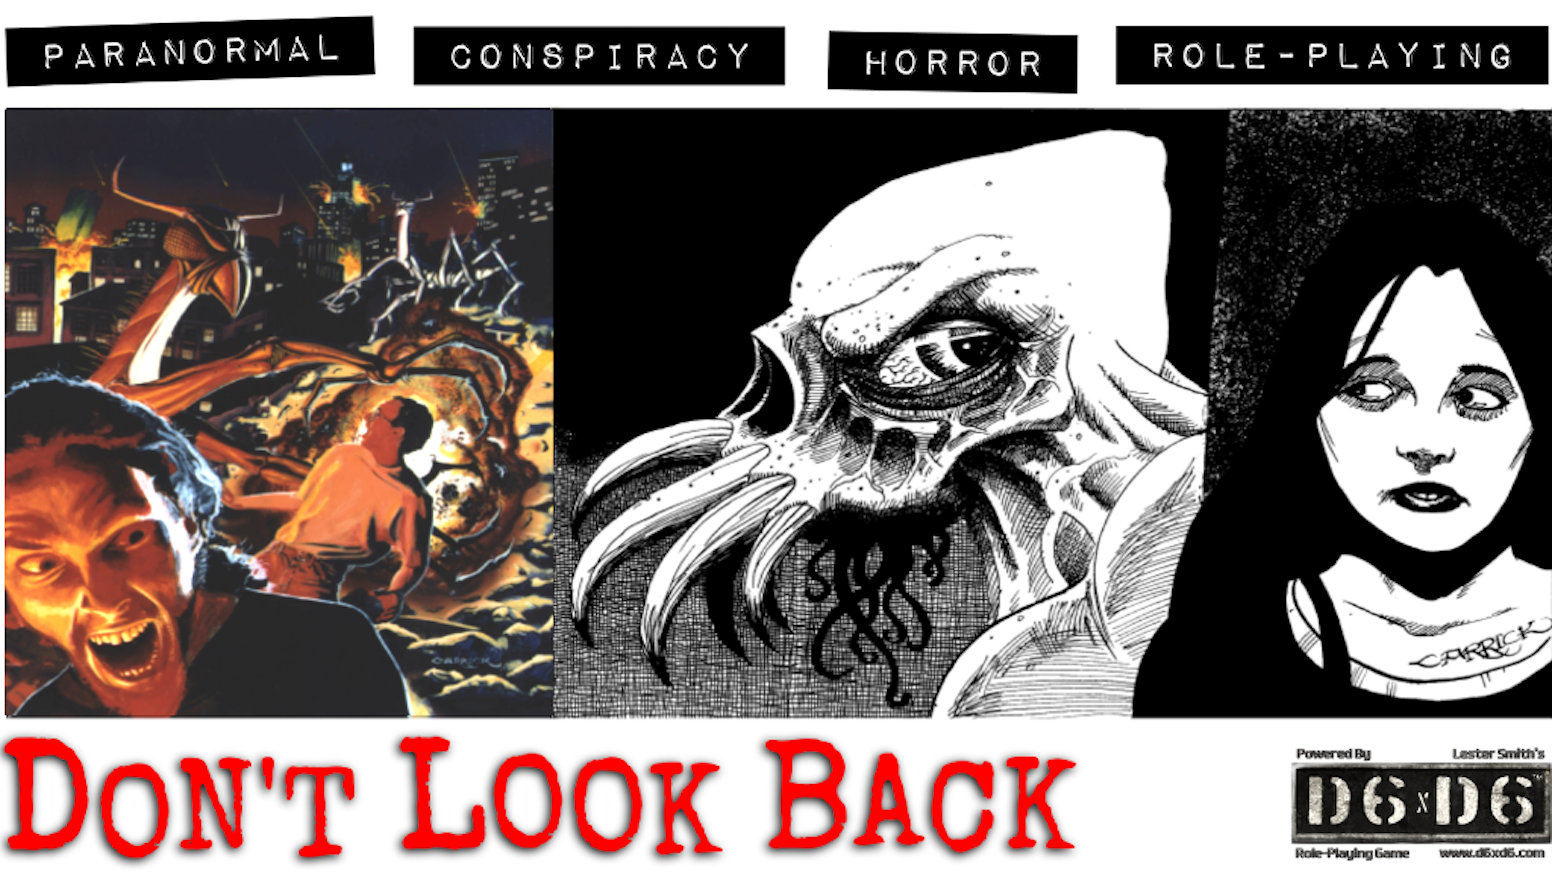 175 Backers helped bring a new edition of this classic game out in 2018! The Kickstarter is over but the new third edition of Don't Look Back is already available featuring an updated and expanded rulebook!